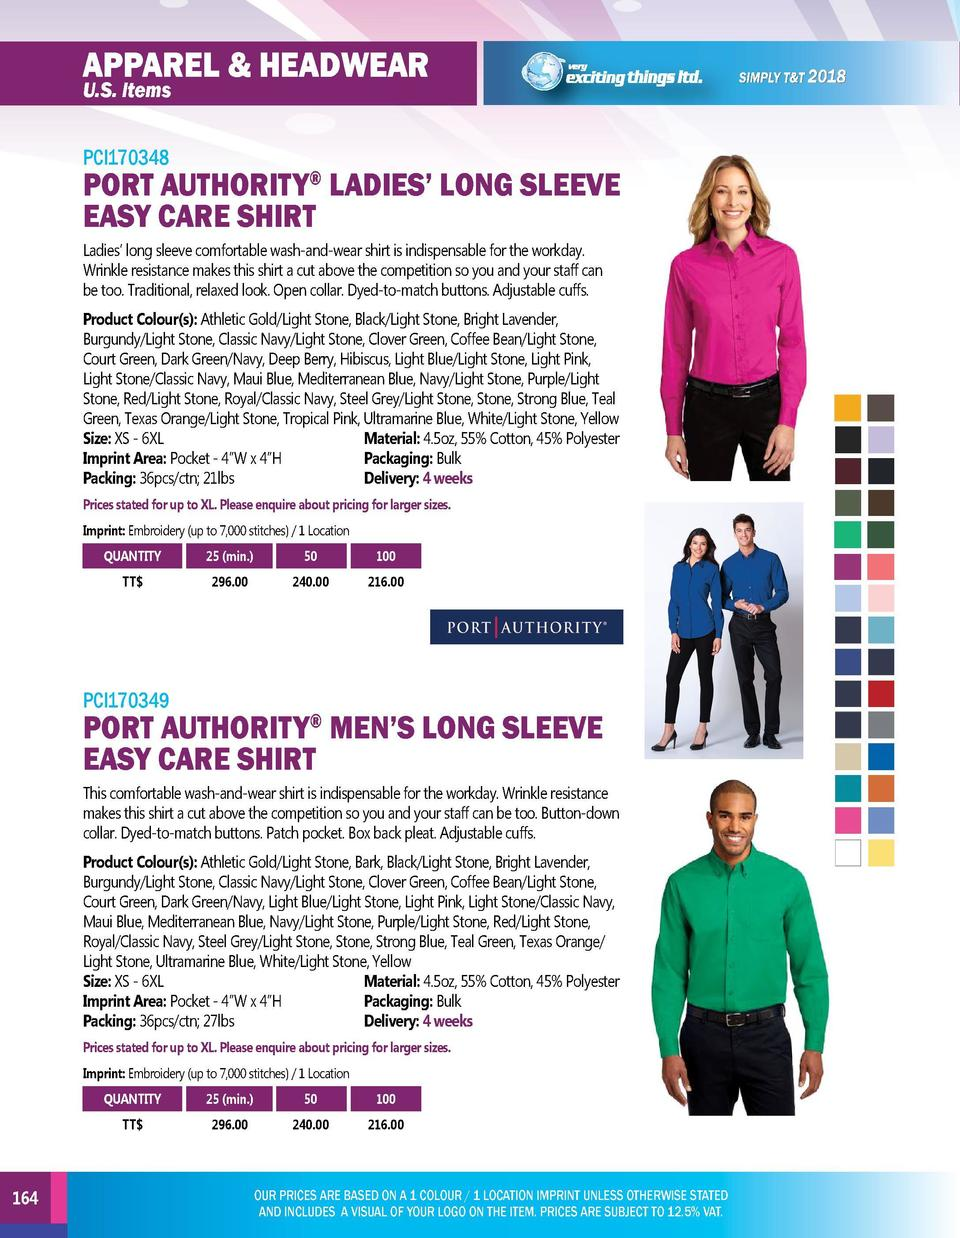 APPAREL   HEADWEAR  APPAREL   HEADWEAR  PCI170348  PCI170350  U.S. Items  PORT AUTHORITY LADIES    LONG SLEEVE EASY CARE S...